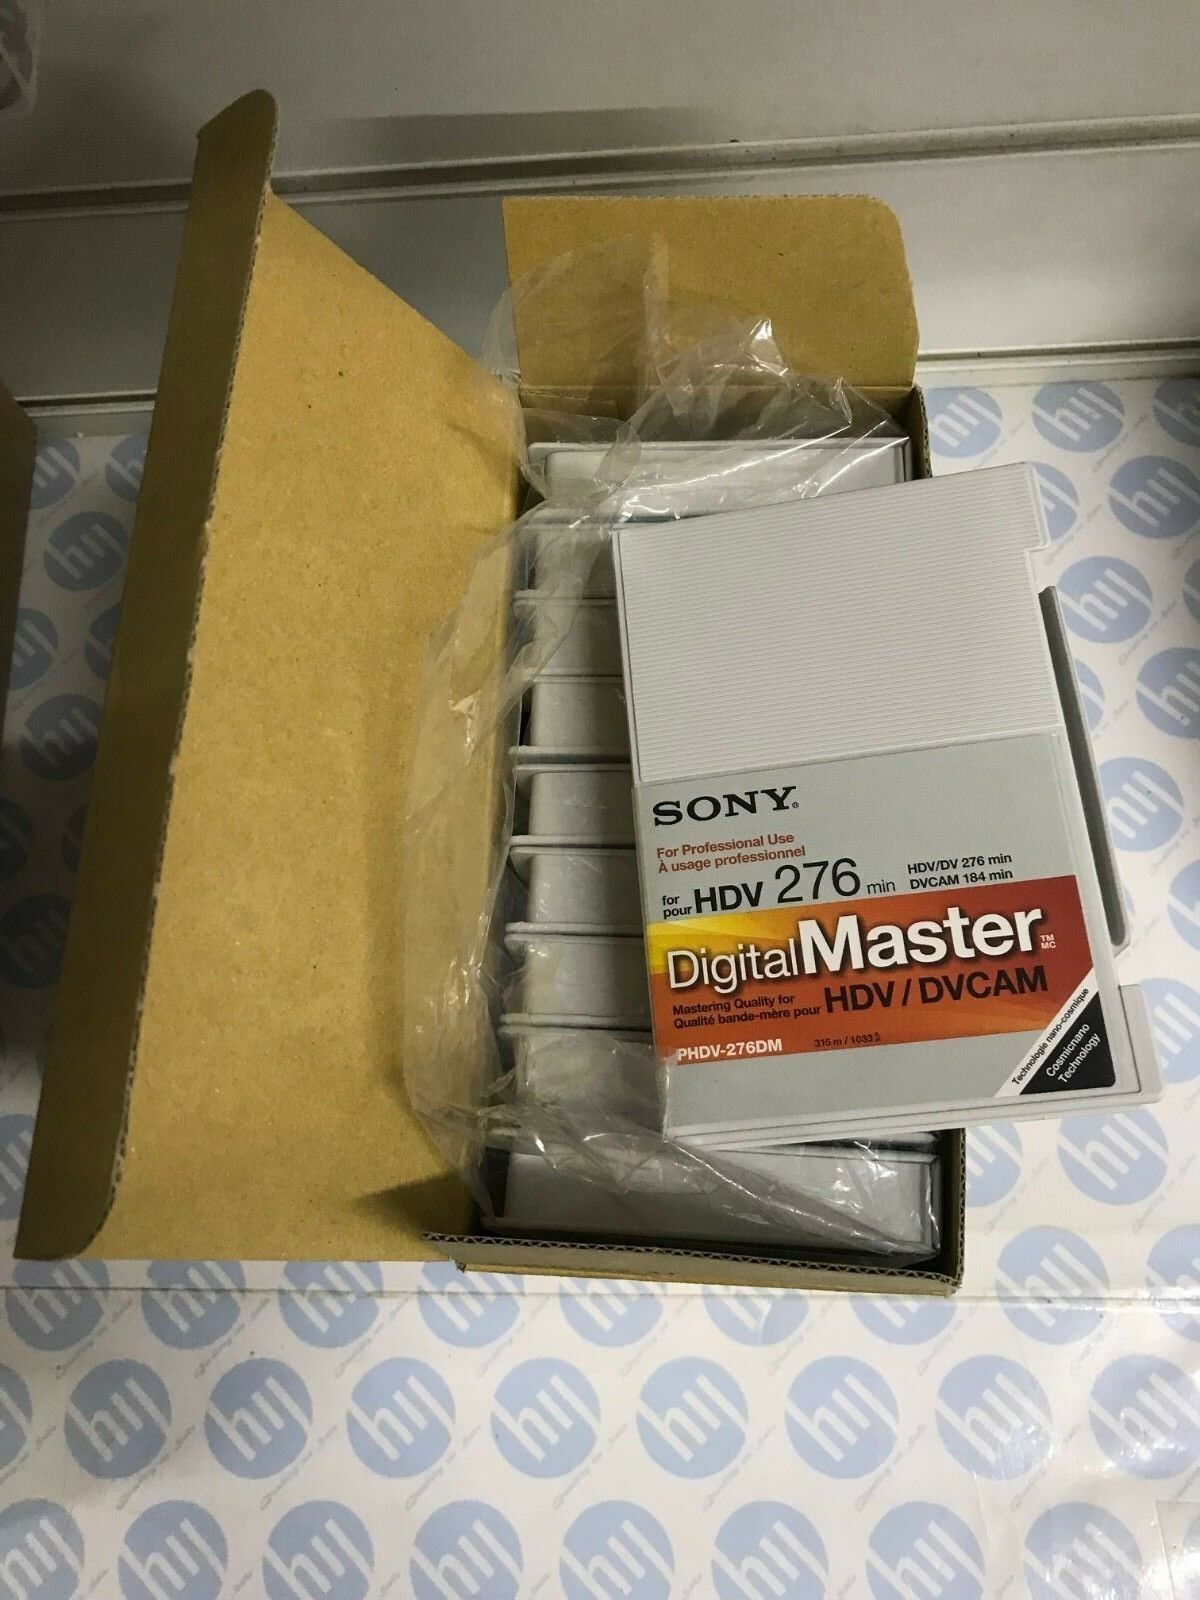 SONY HDV Video Tape Phdv-276DM 10 pieces new in box